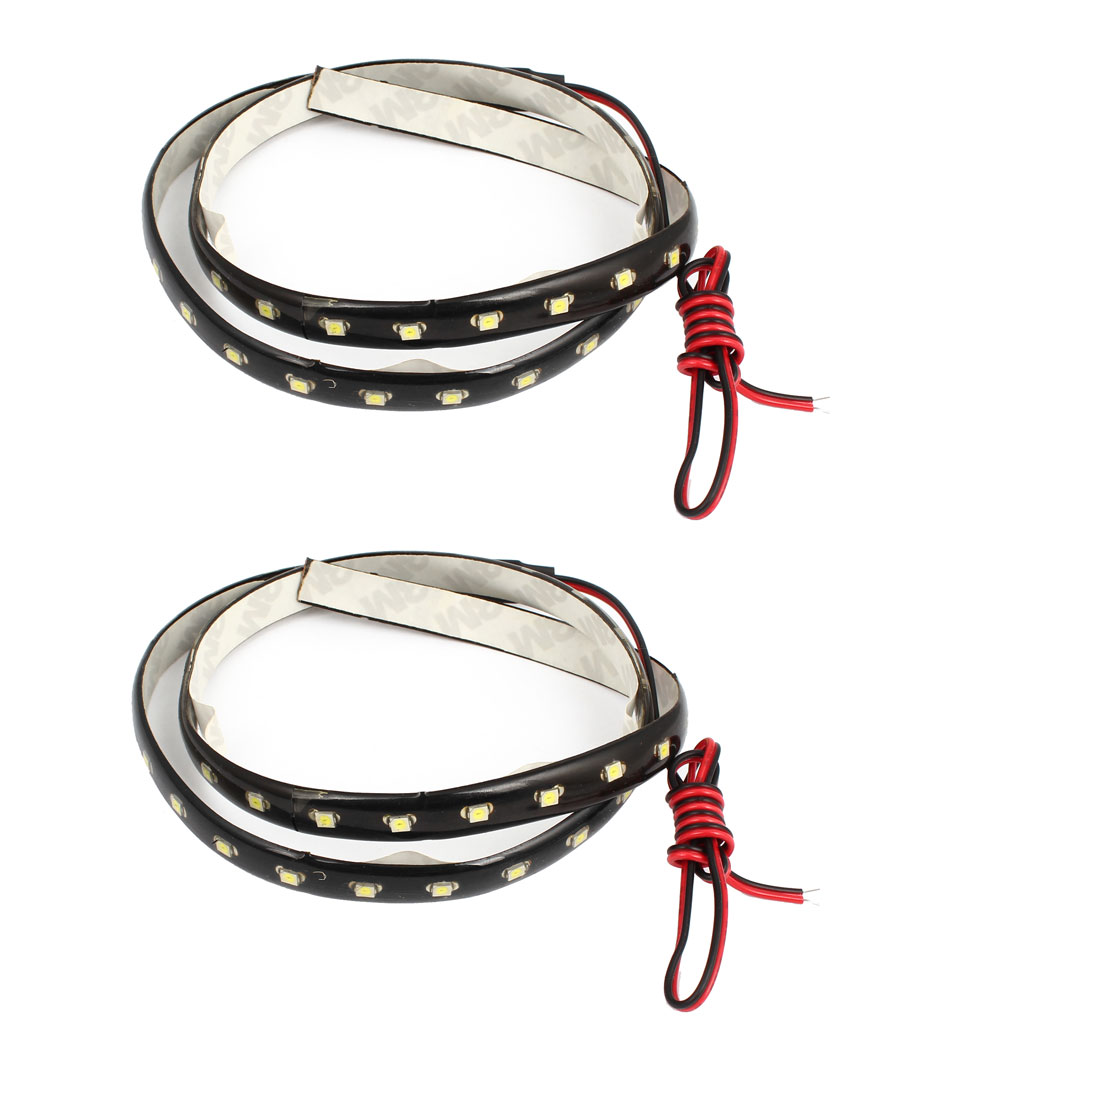 2 Pcs Car Decorative Lamp White 1210 45 SMD LEDs Light Strip Bar 60cm Long internal